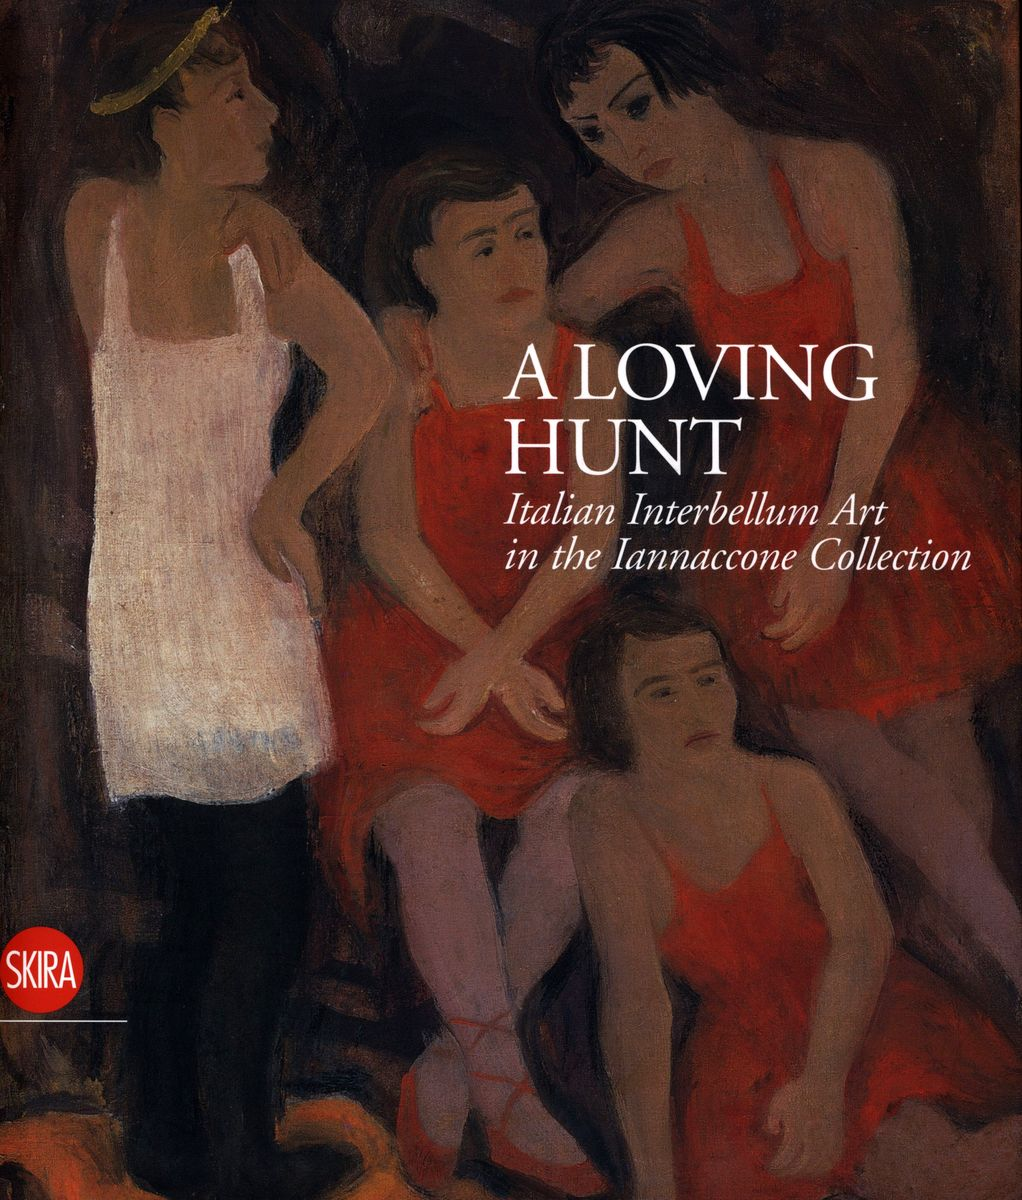 A Loving Hunt. Italian Interbellum Art in the Iannaccone Collection по 3 403.00 руб от изд. Skira Editore